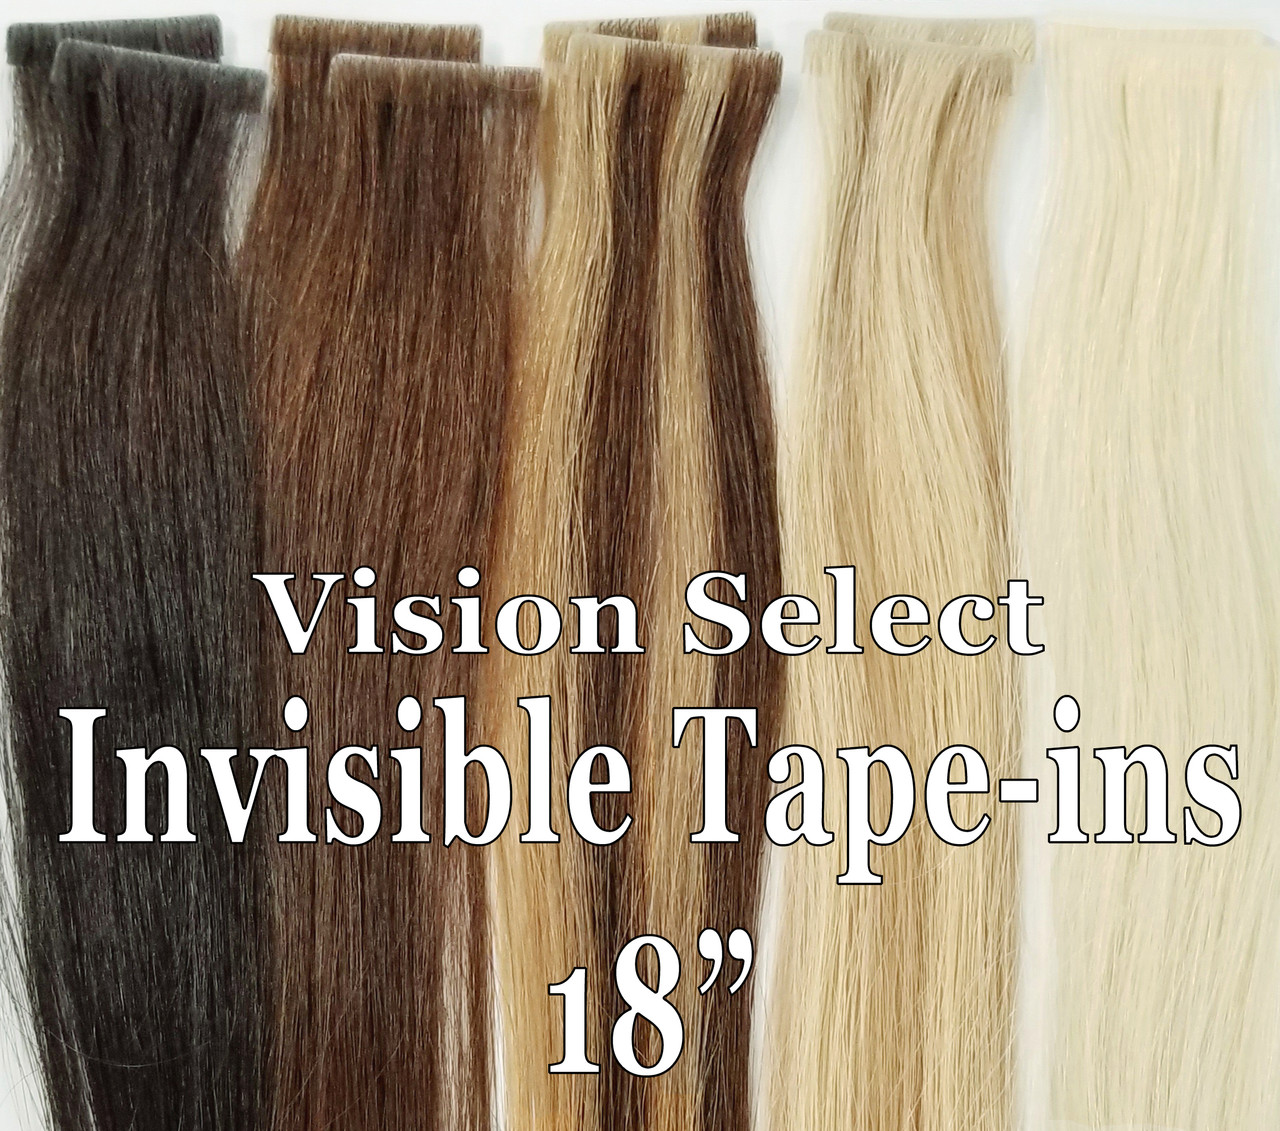 Vision Select Invisible Tape-ins